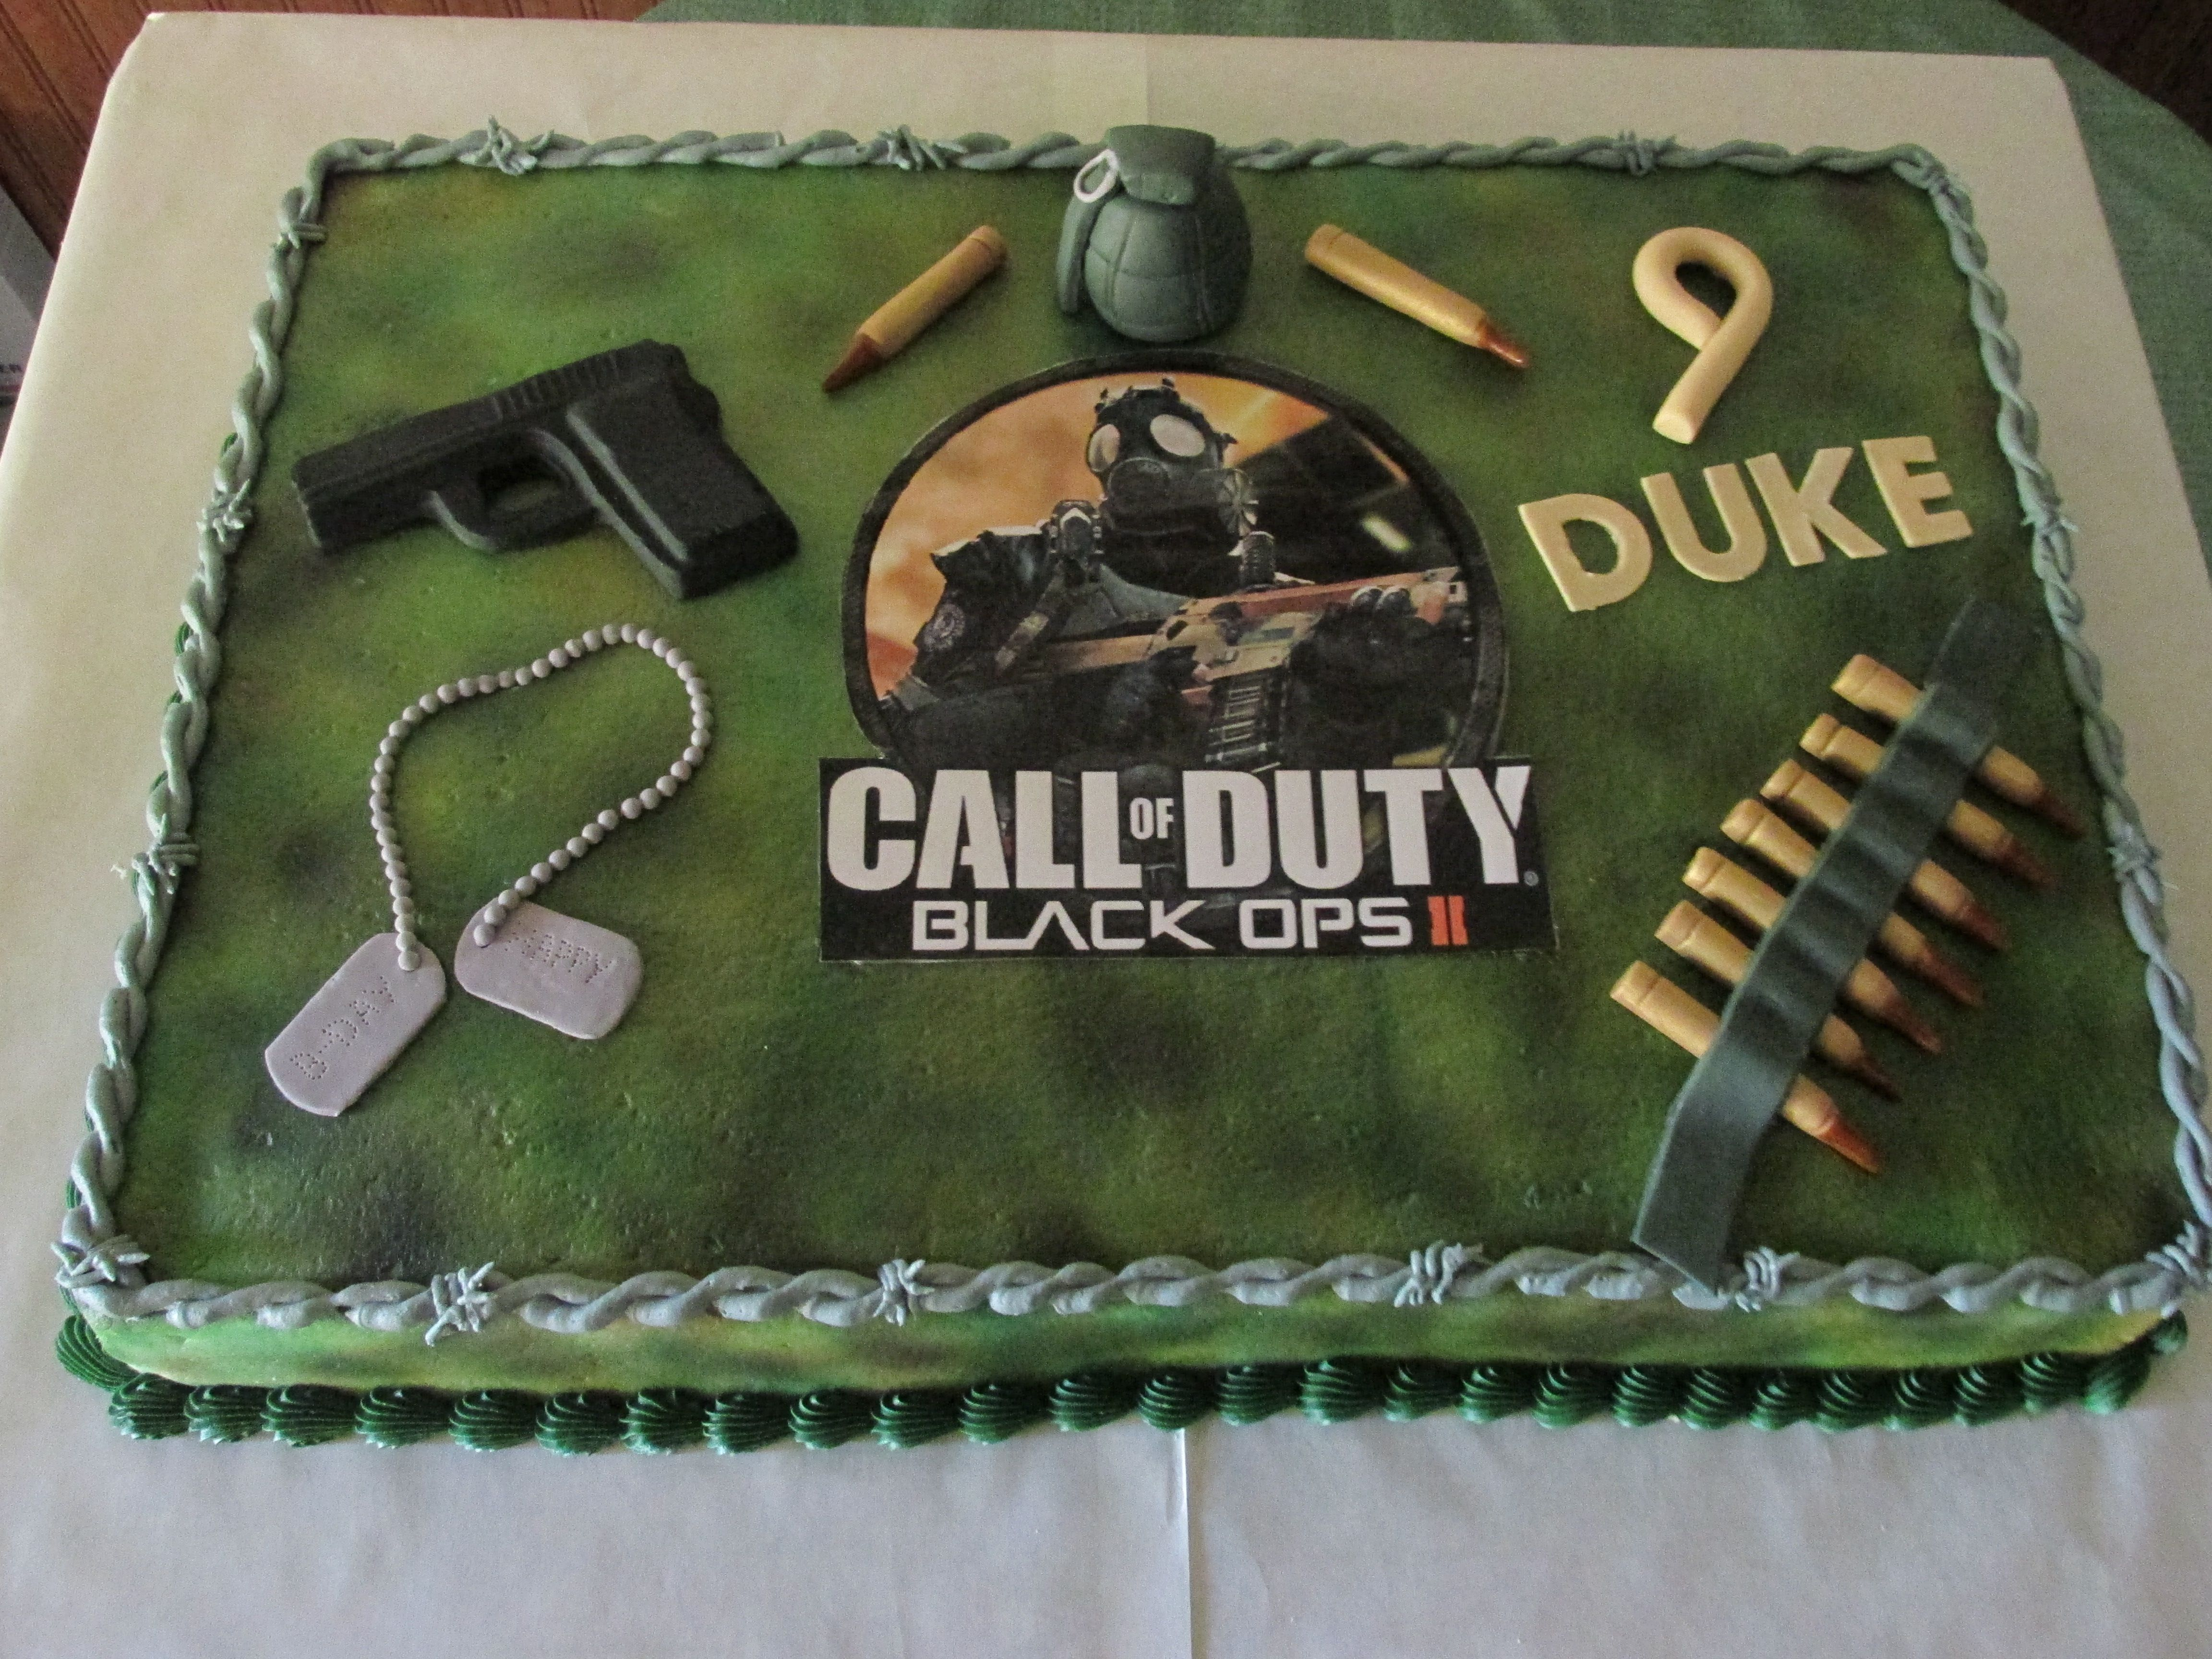 Call Of Duty Black Ops 11 Cake Full Sheet Cake Everything Made